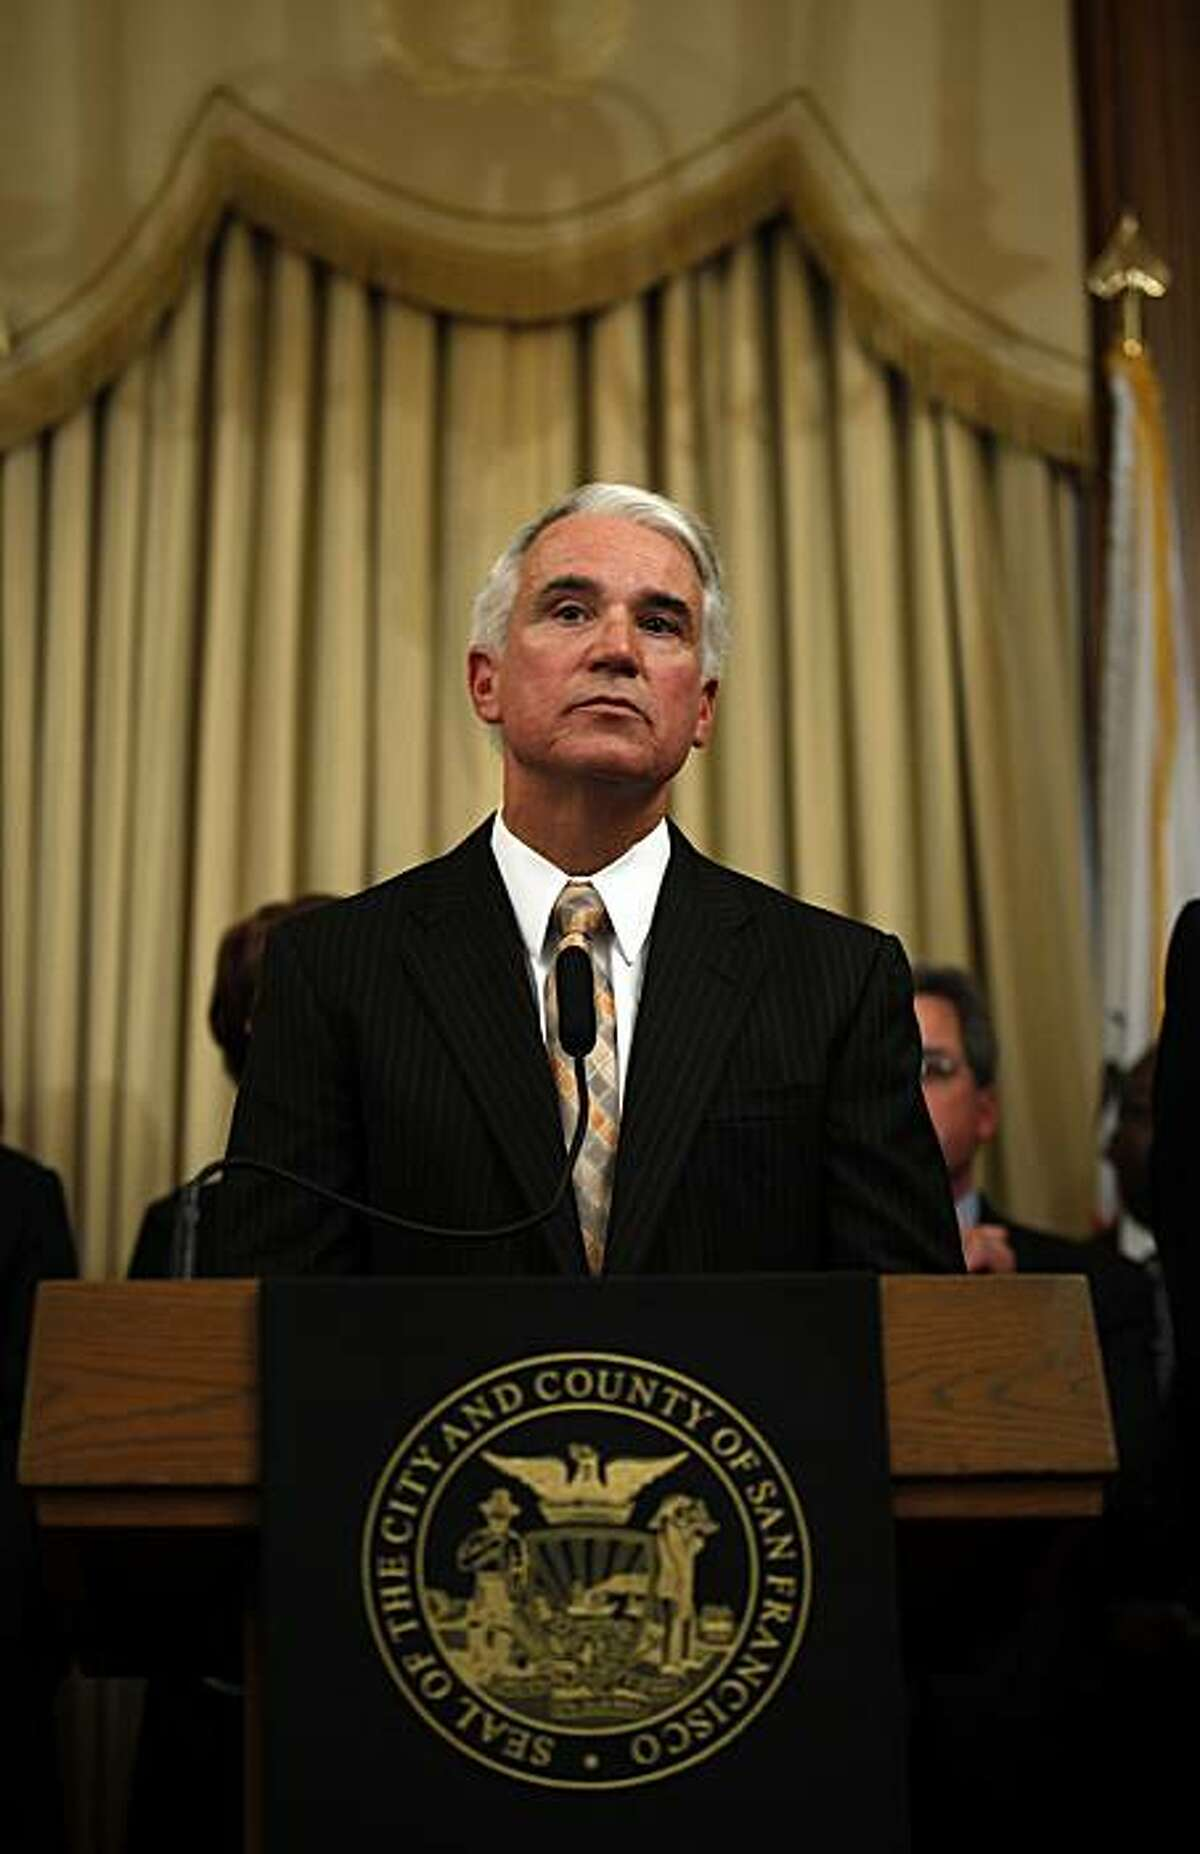 George Gascon is introduced, on Wednesday June 17, 2009 as the new Police Chief of San Francisco, Calif. which he will begin in late July.